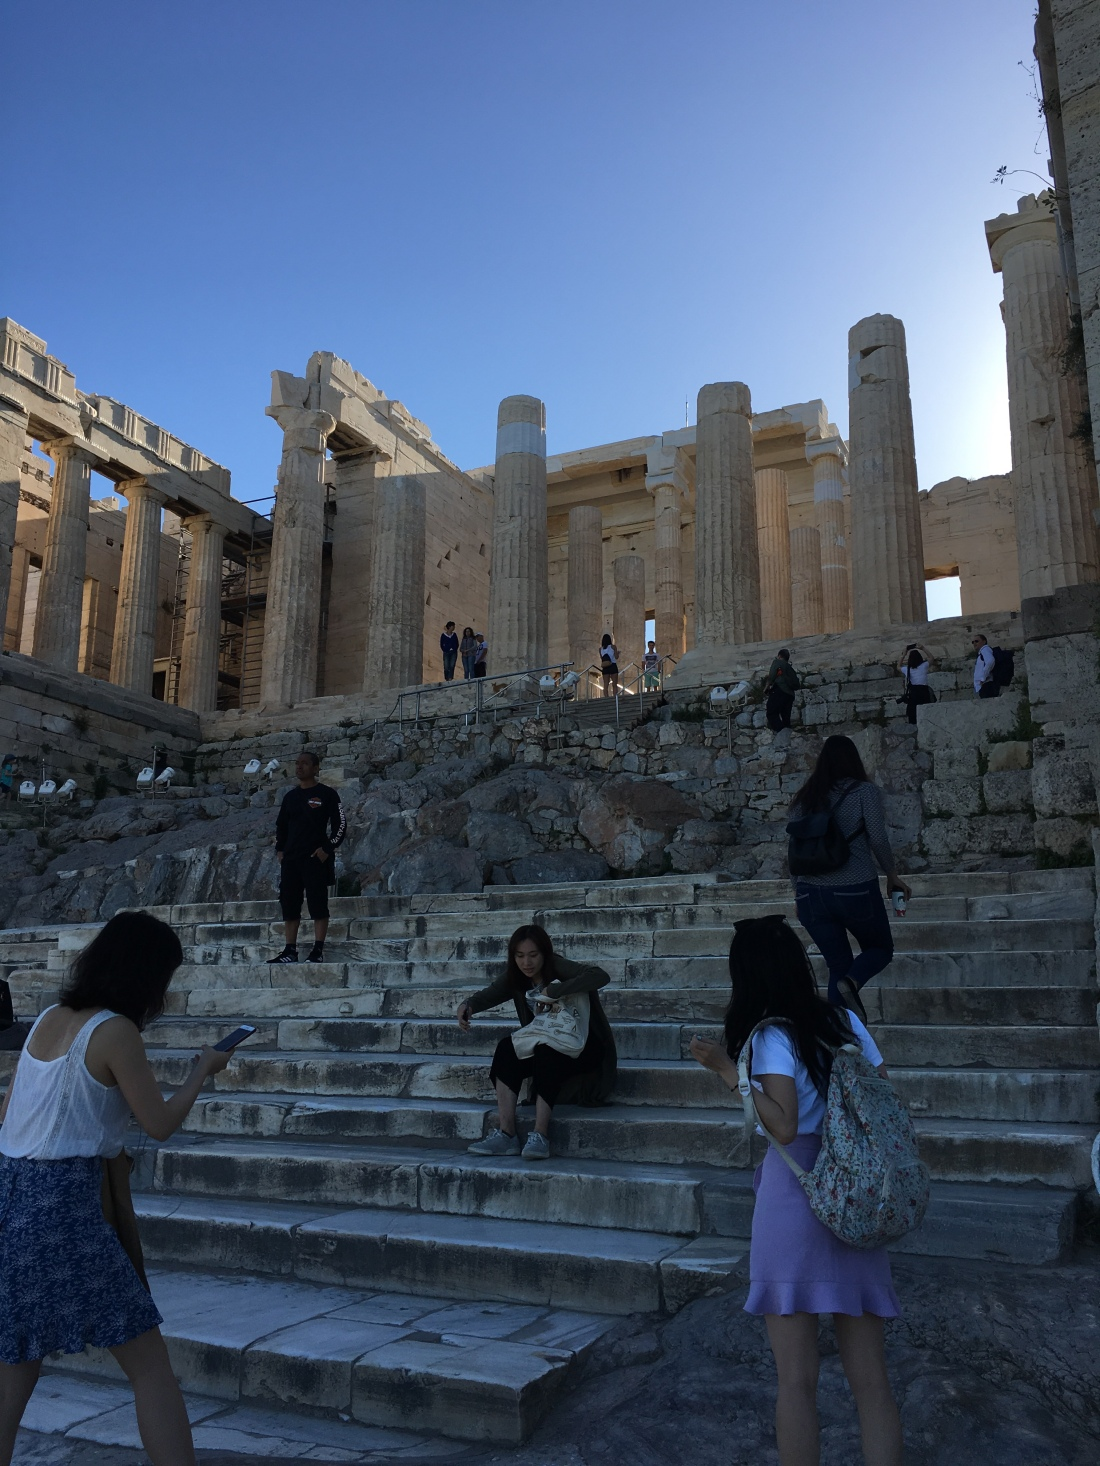 Steps up to the Parthenon at the opening of the day. BROWNELL, May 2019